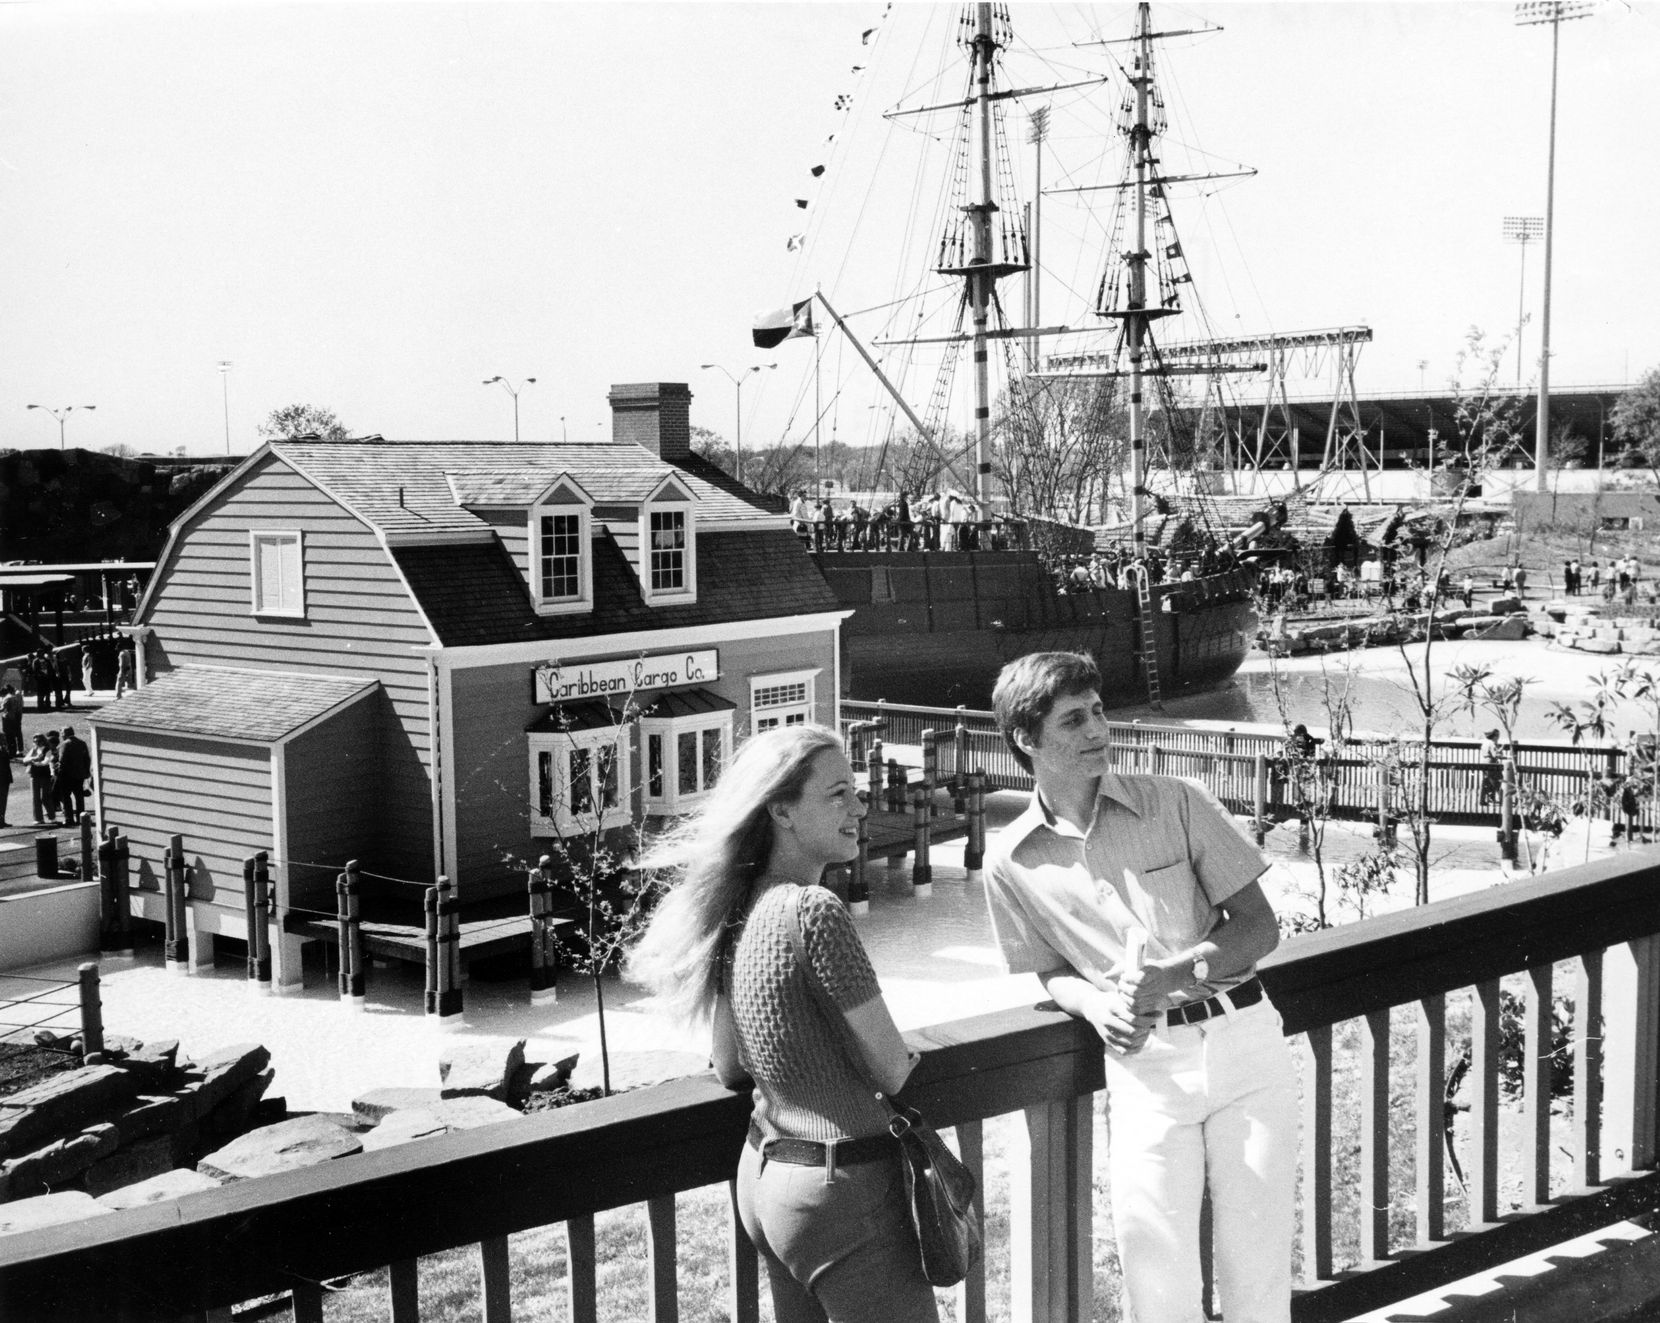 Visitors enjoyed the sunshine on opening day of Seven Seas, March 18, 1972.